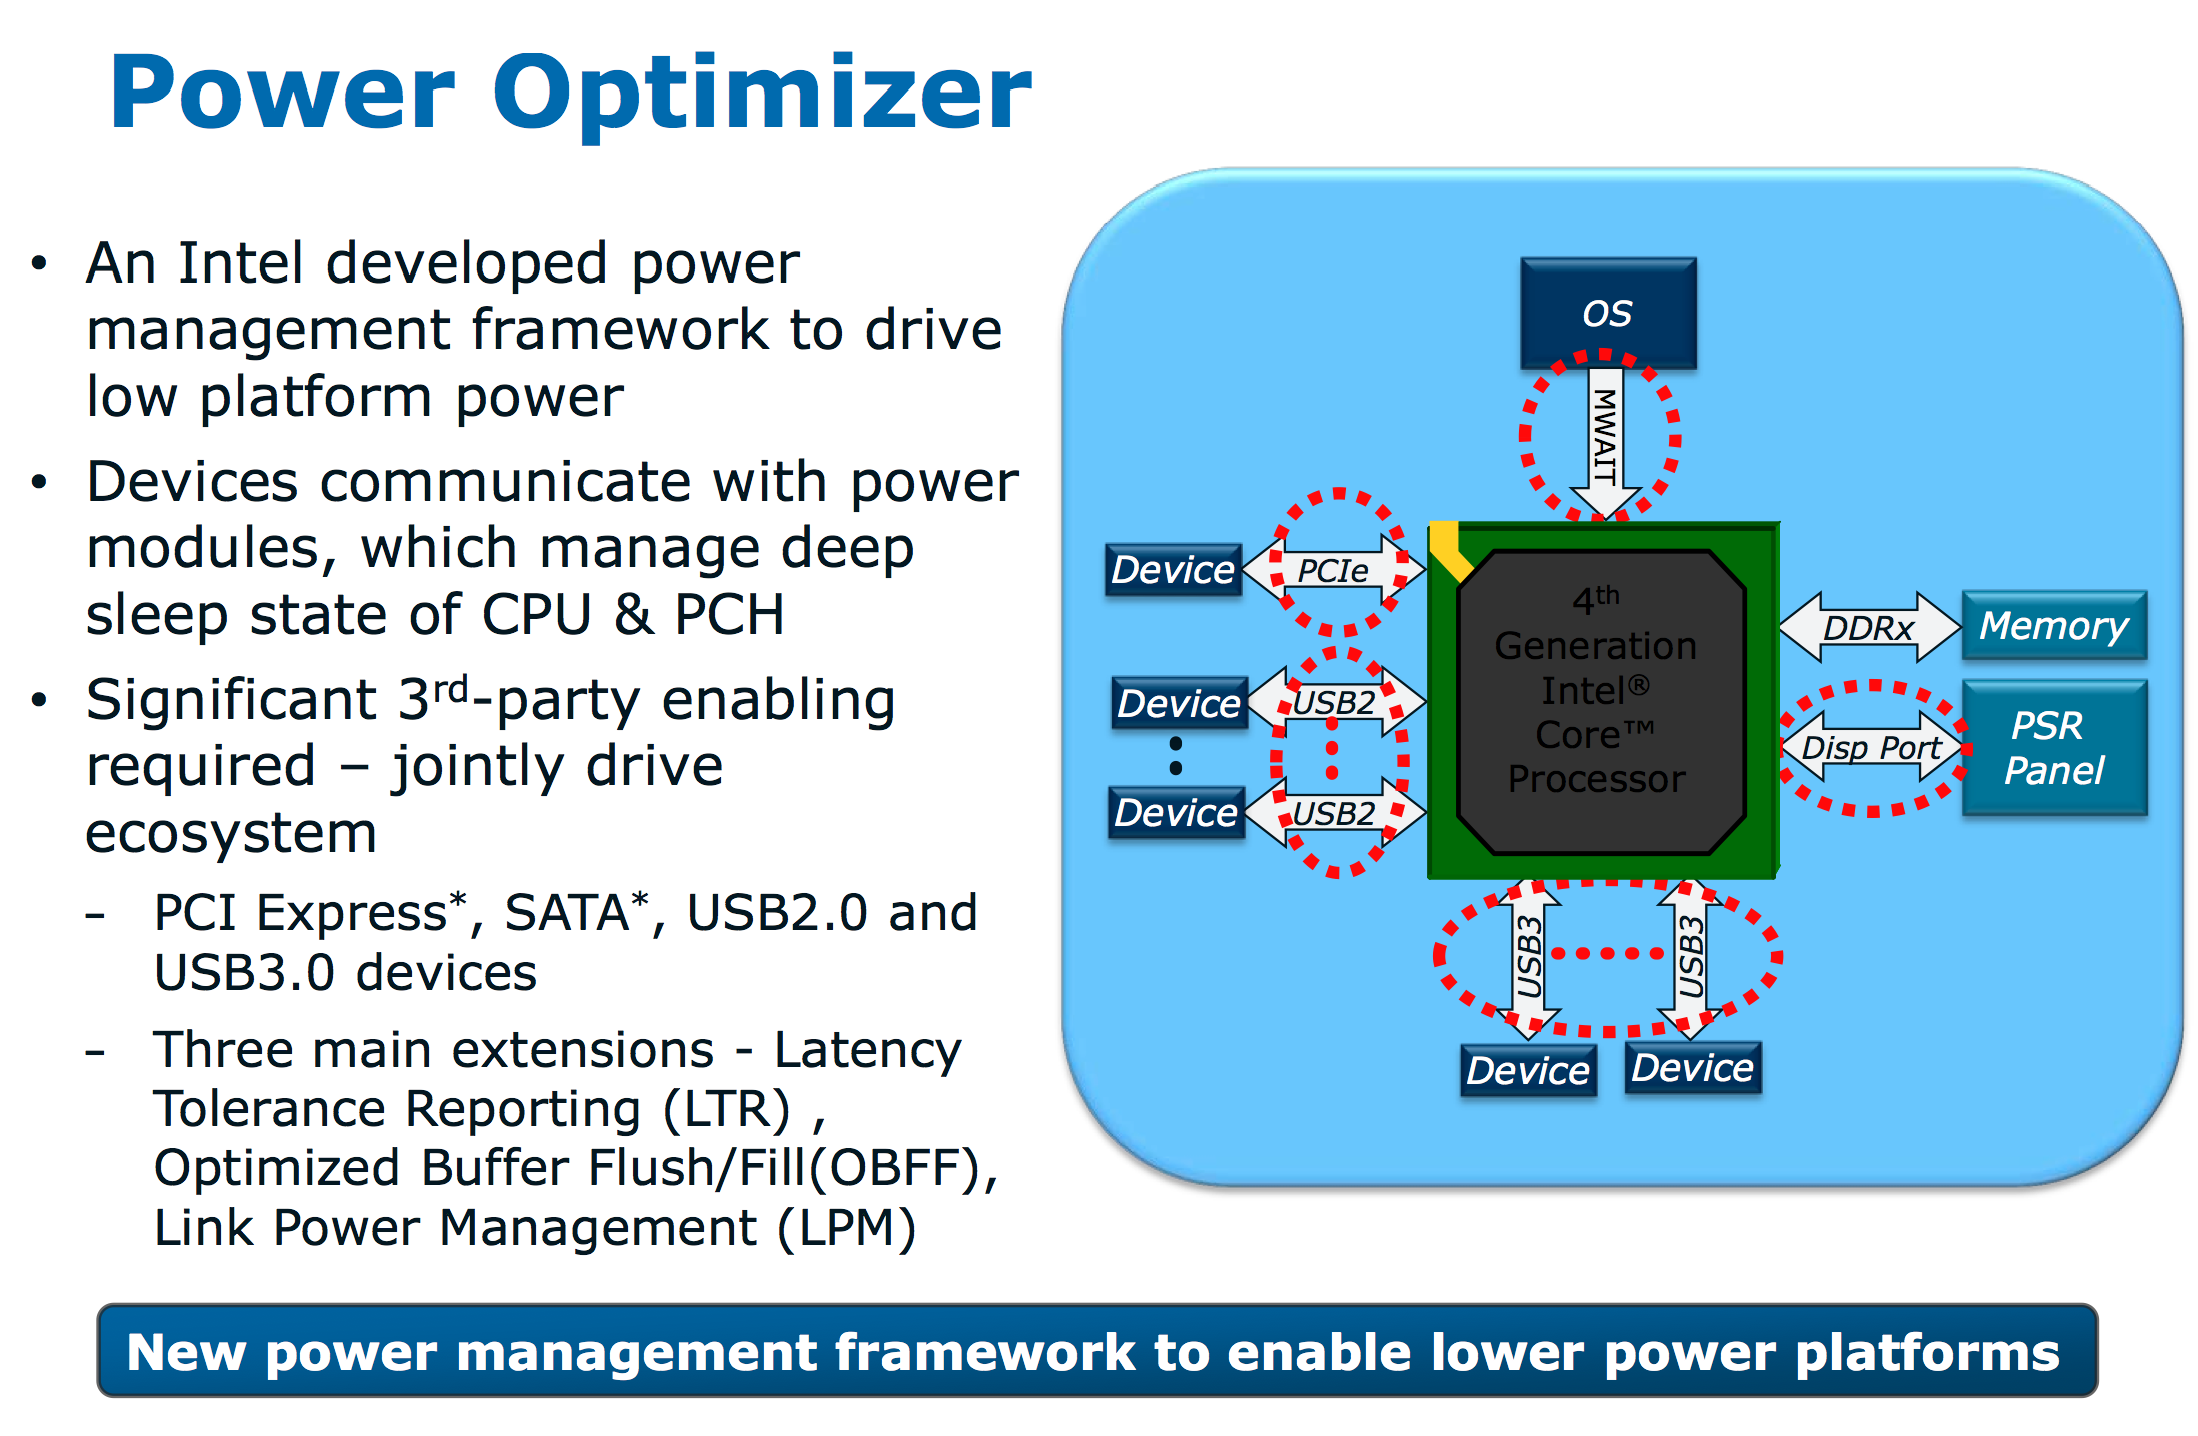 Haswell ULT: Platform Power Improvements - The Haswell Ultrabook